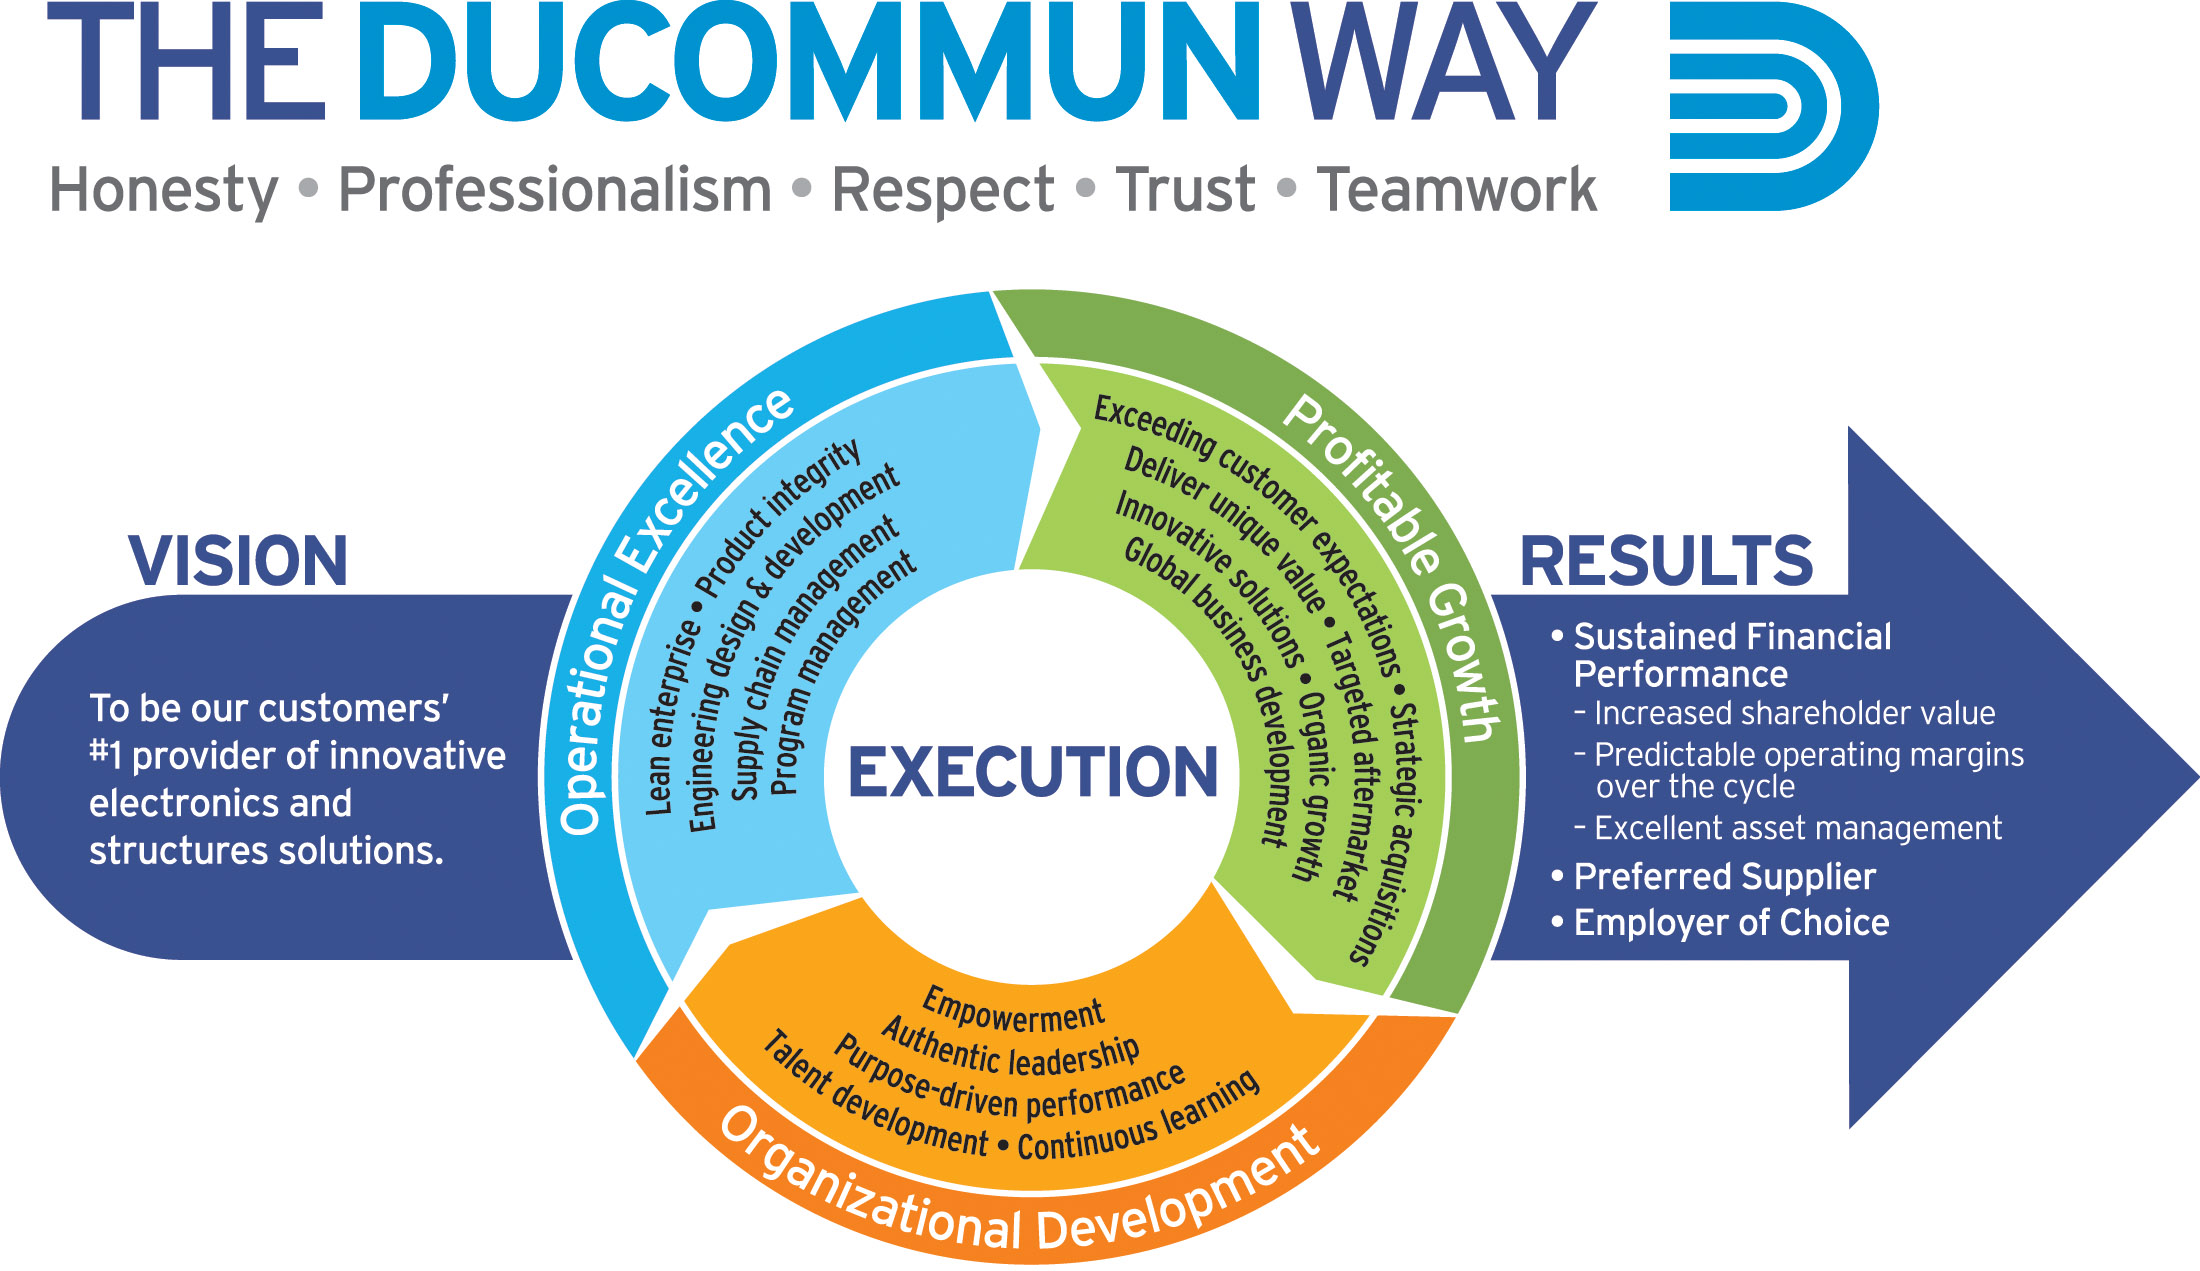 professionalism and respect Ordinarily i focus on how hard it is to develop a good team there are so many interpersonal dynamics and individual needs that can clog up the works of getting the right stuff done for the company.